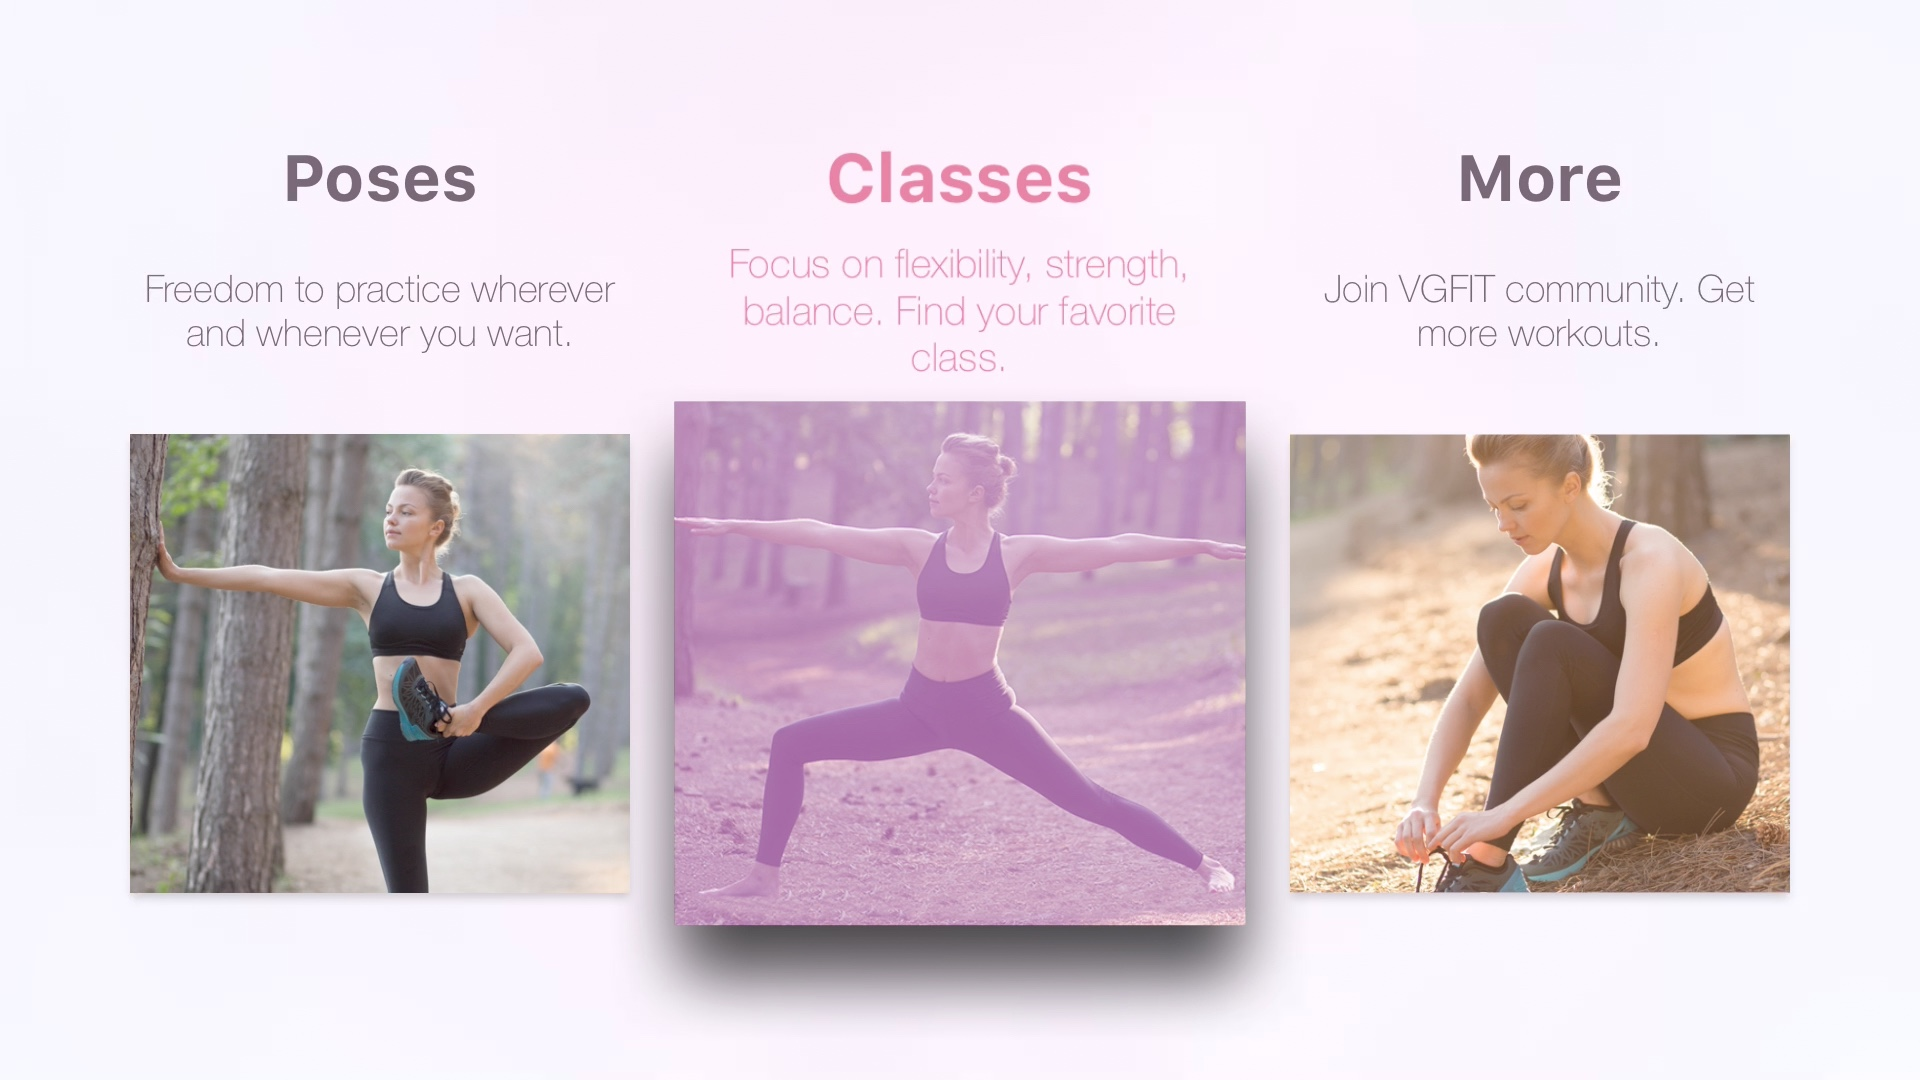 apple tv yoga apps - Yoga Poses and Classes